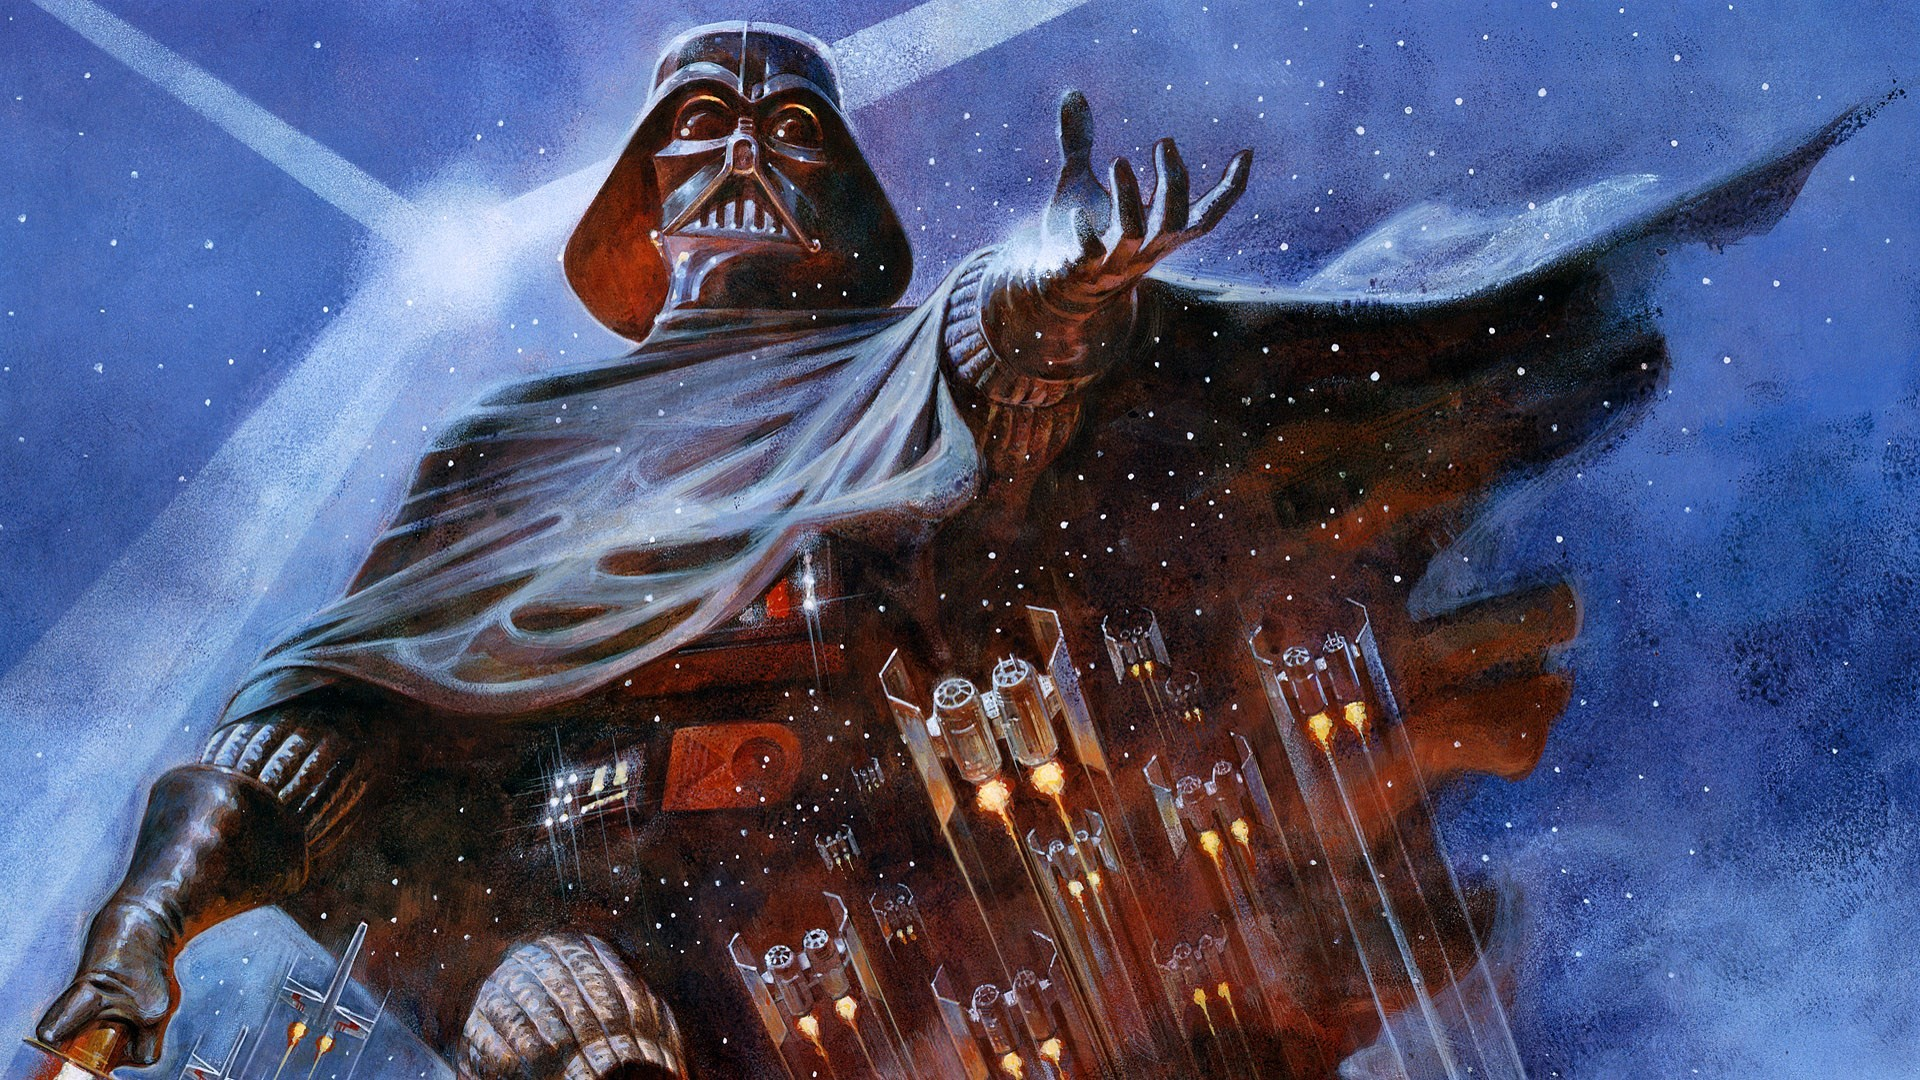 Star Wars: Episode V - The Empire Strikes Back Wallpapers